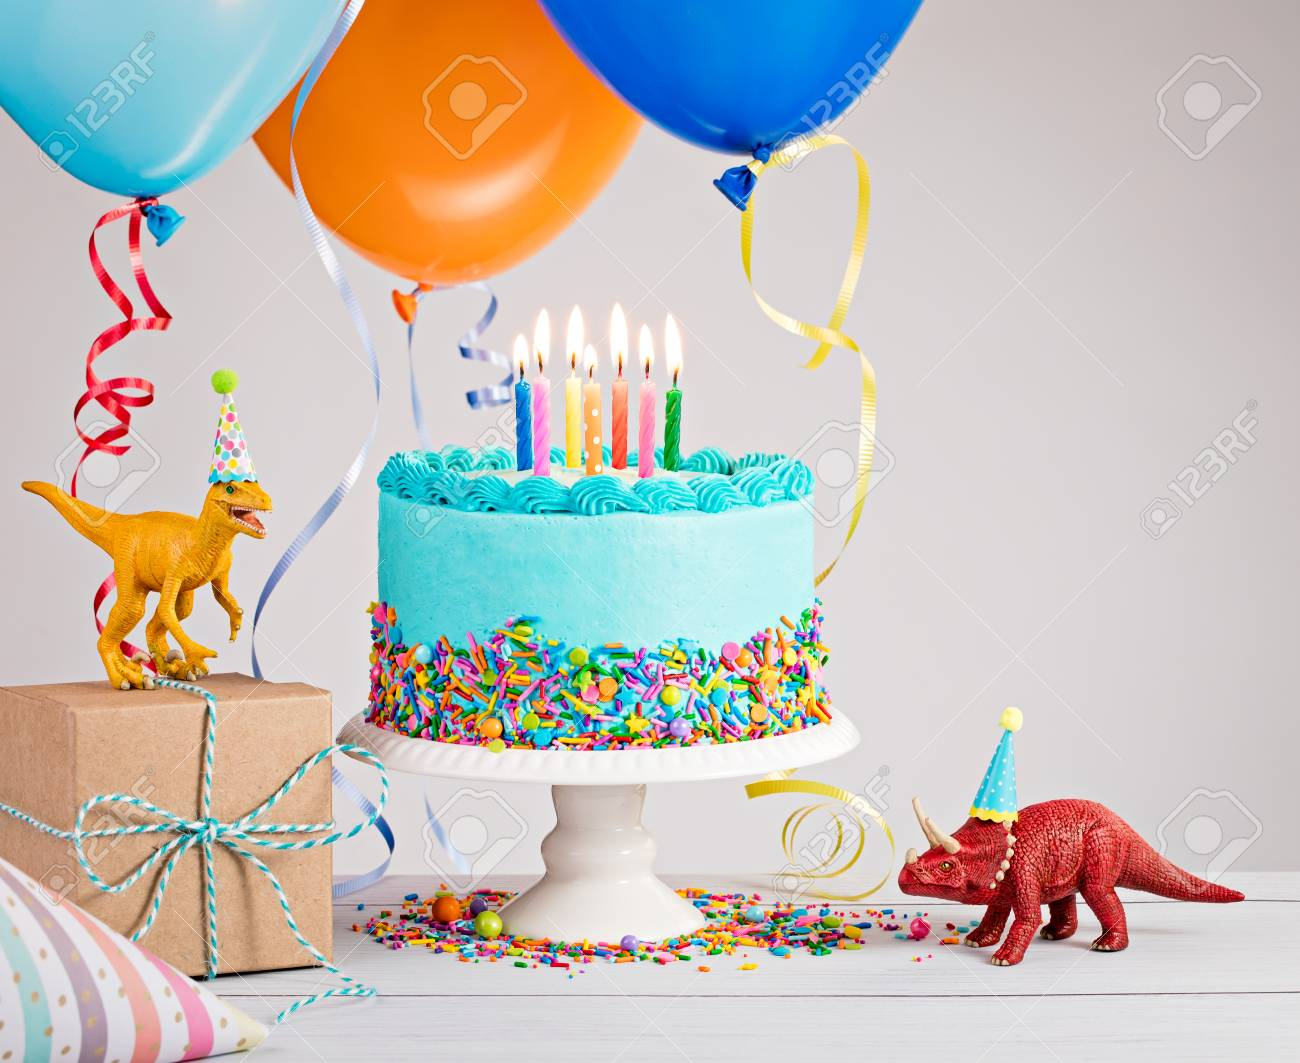 Childs Birthday Party Scene With Blue Cake Gift Box Toy Dinosaurs